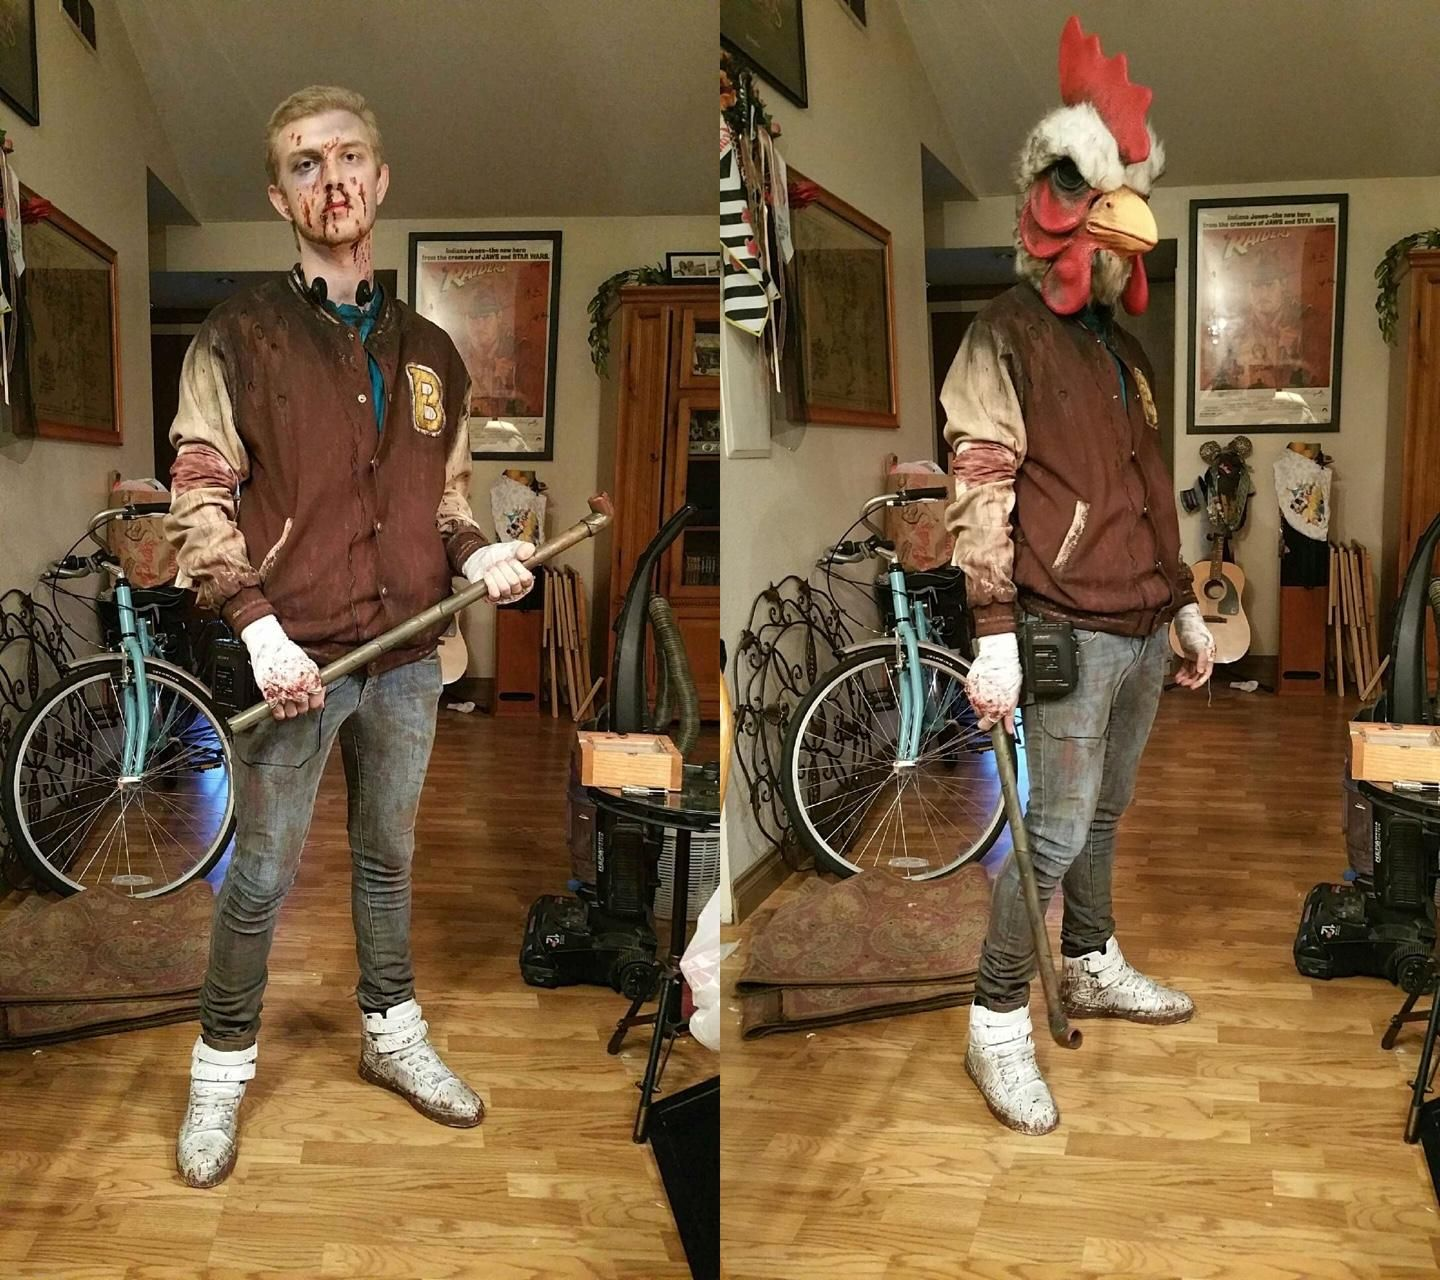 The Best Jacket Cosplay I Ve Ever Seen Imgur Hotline Miami Miami Art Cosplay